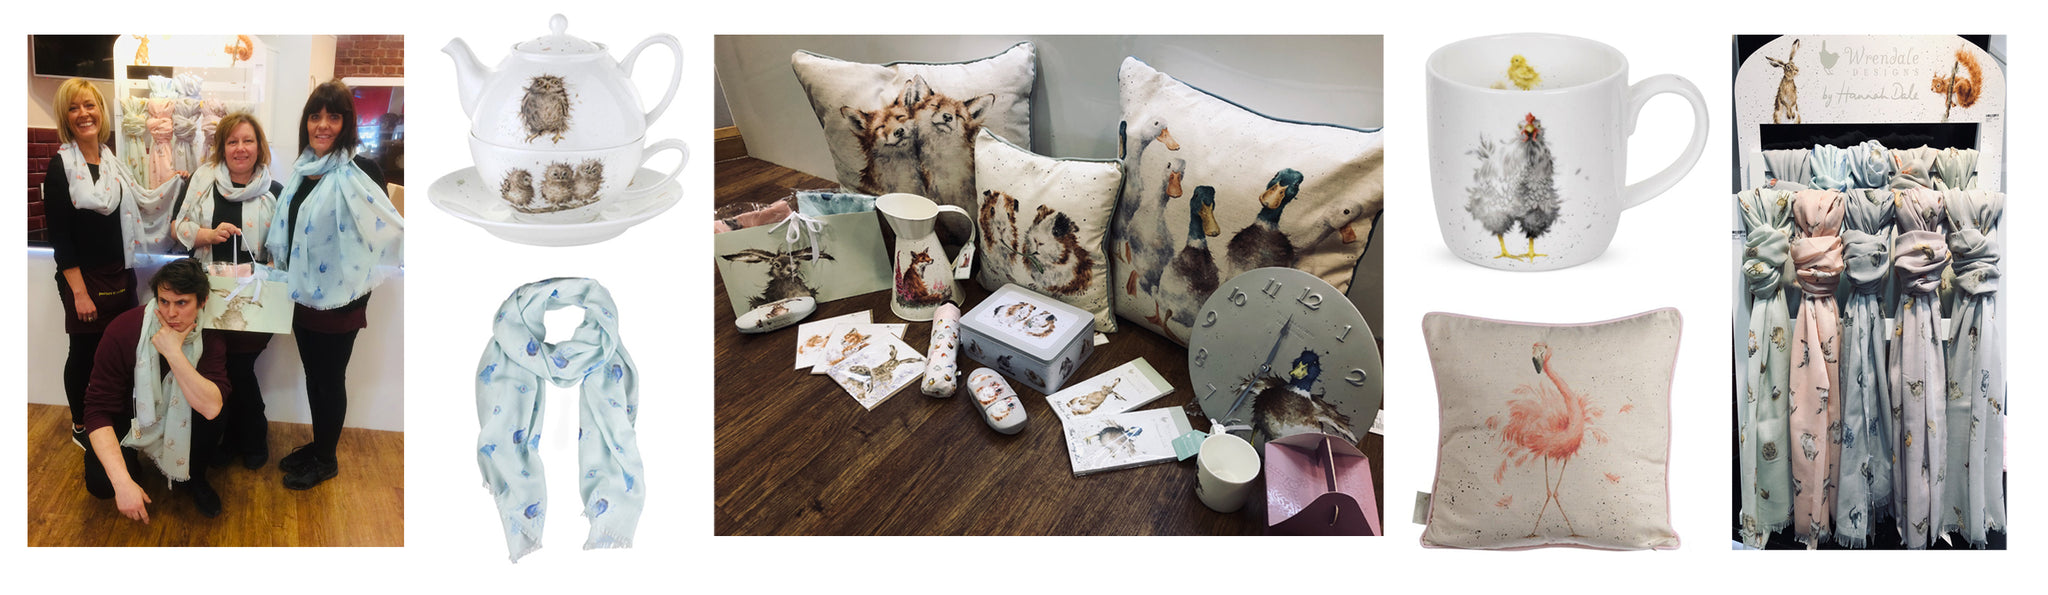 Buy Mother's day Gifts 2019 at Potters Cookshop